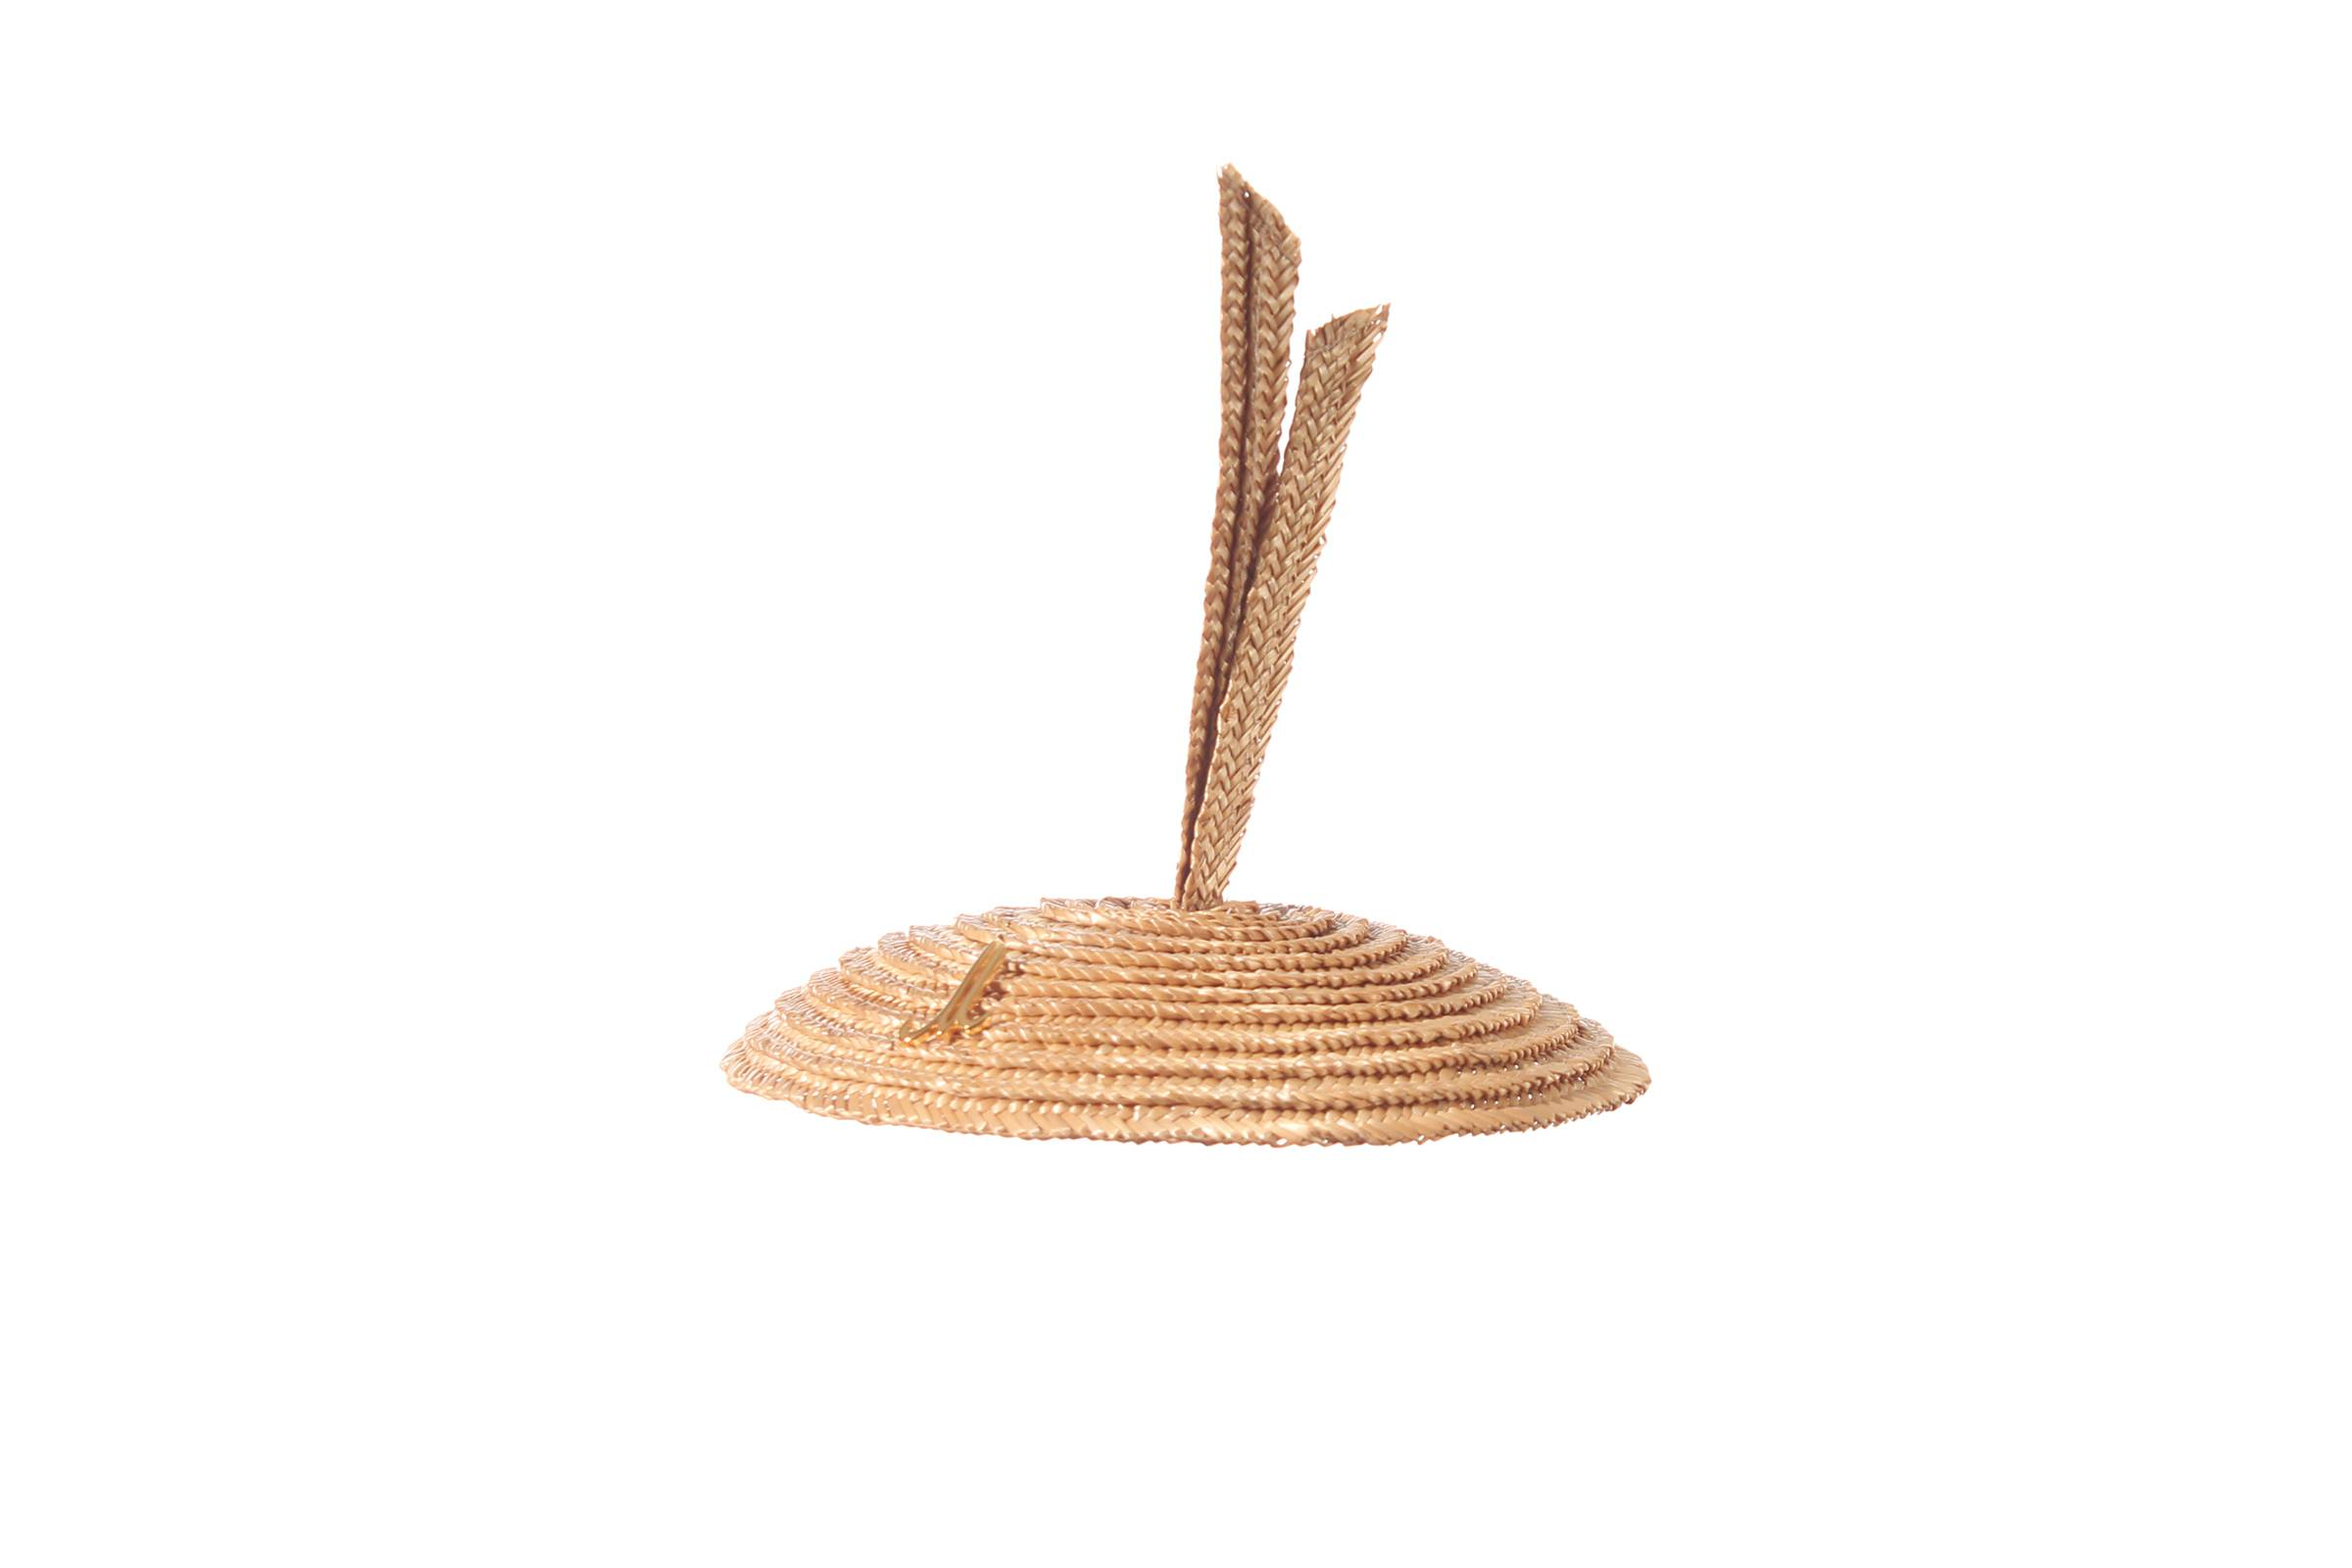 kippa ALBINE rice straw braid